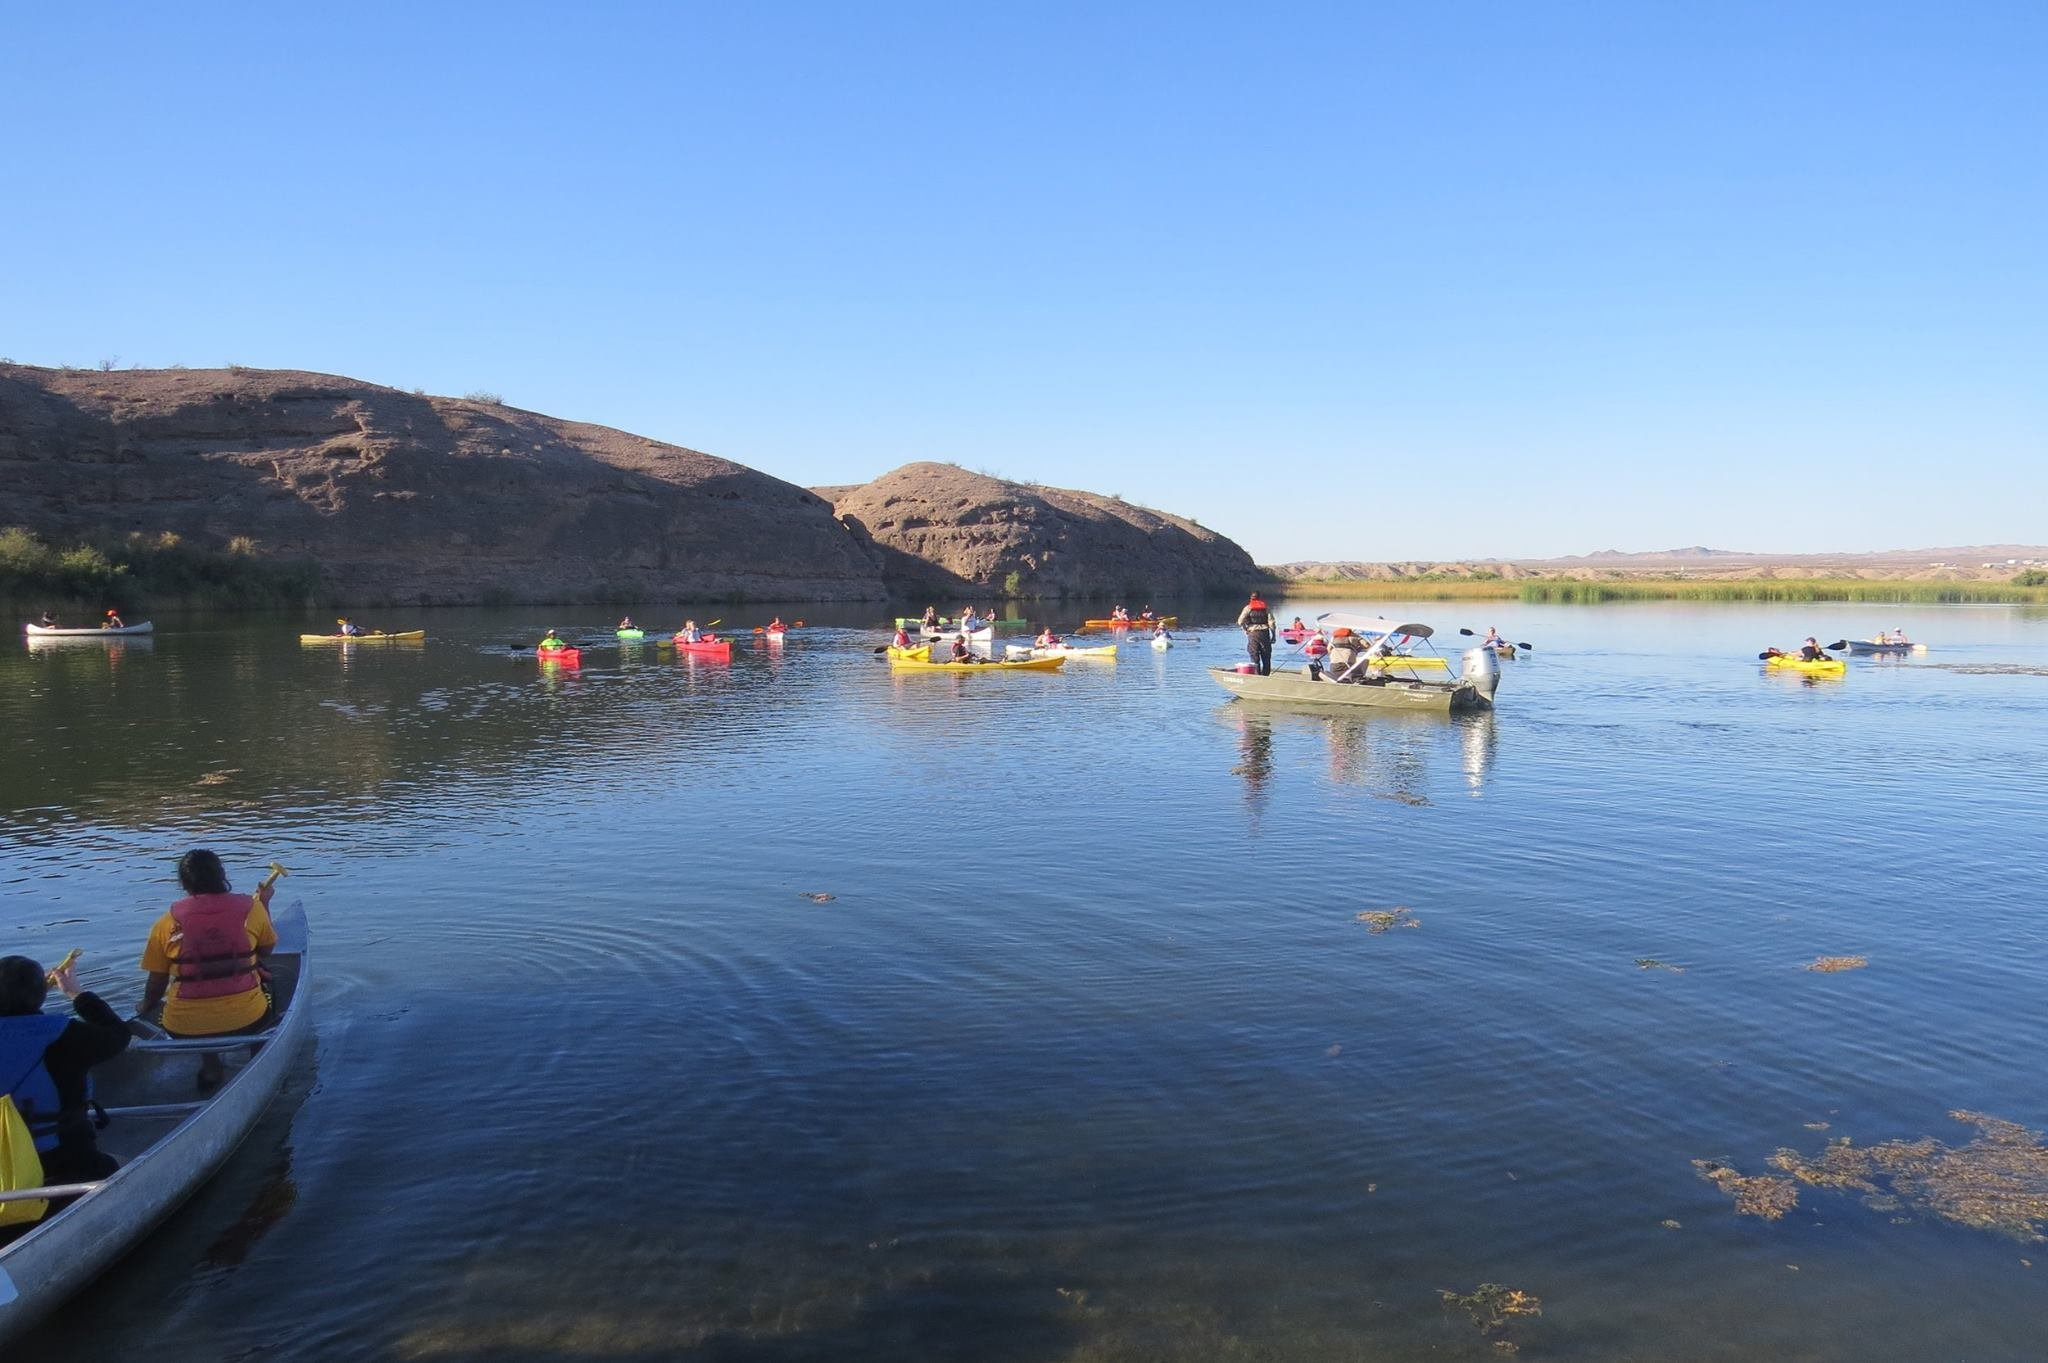 A new proposal would establish a series of no-wake and restricted zones throughout the Havasu National Wildlife Refuge's backwaters. (Source: Facebook.com)